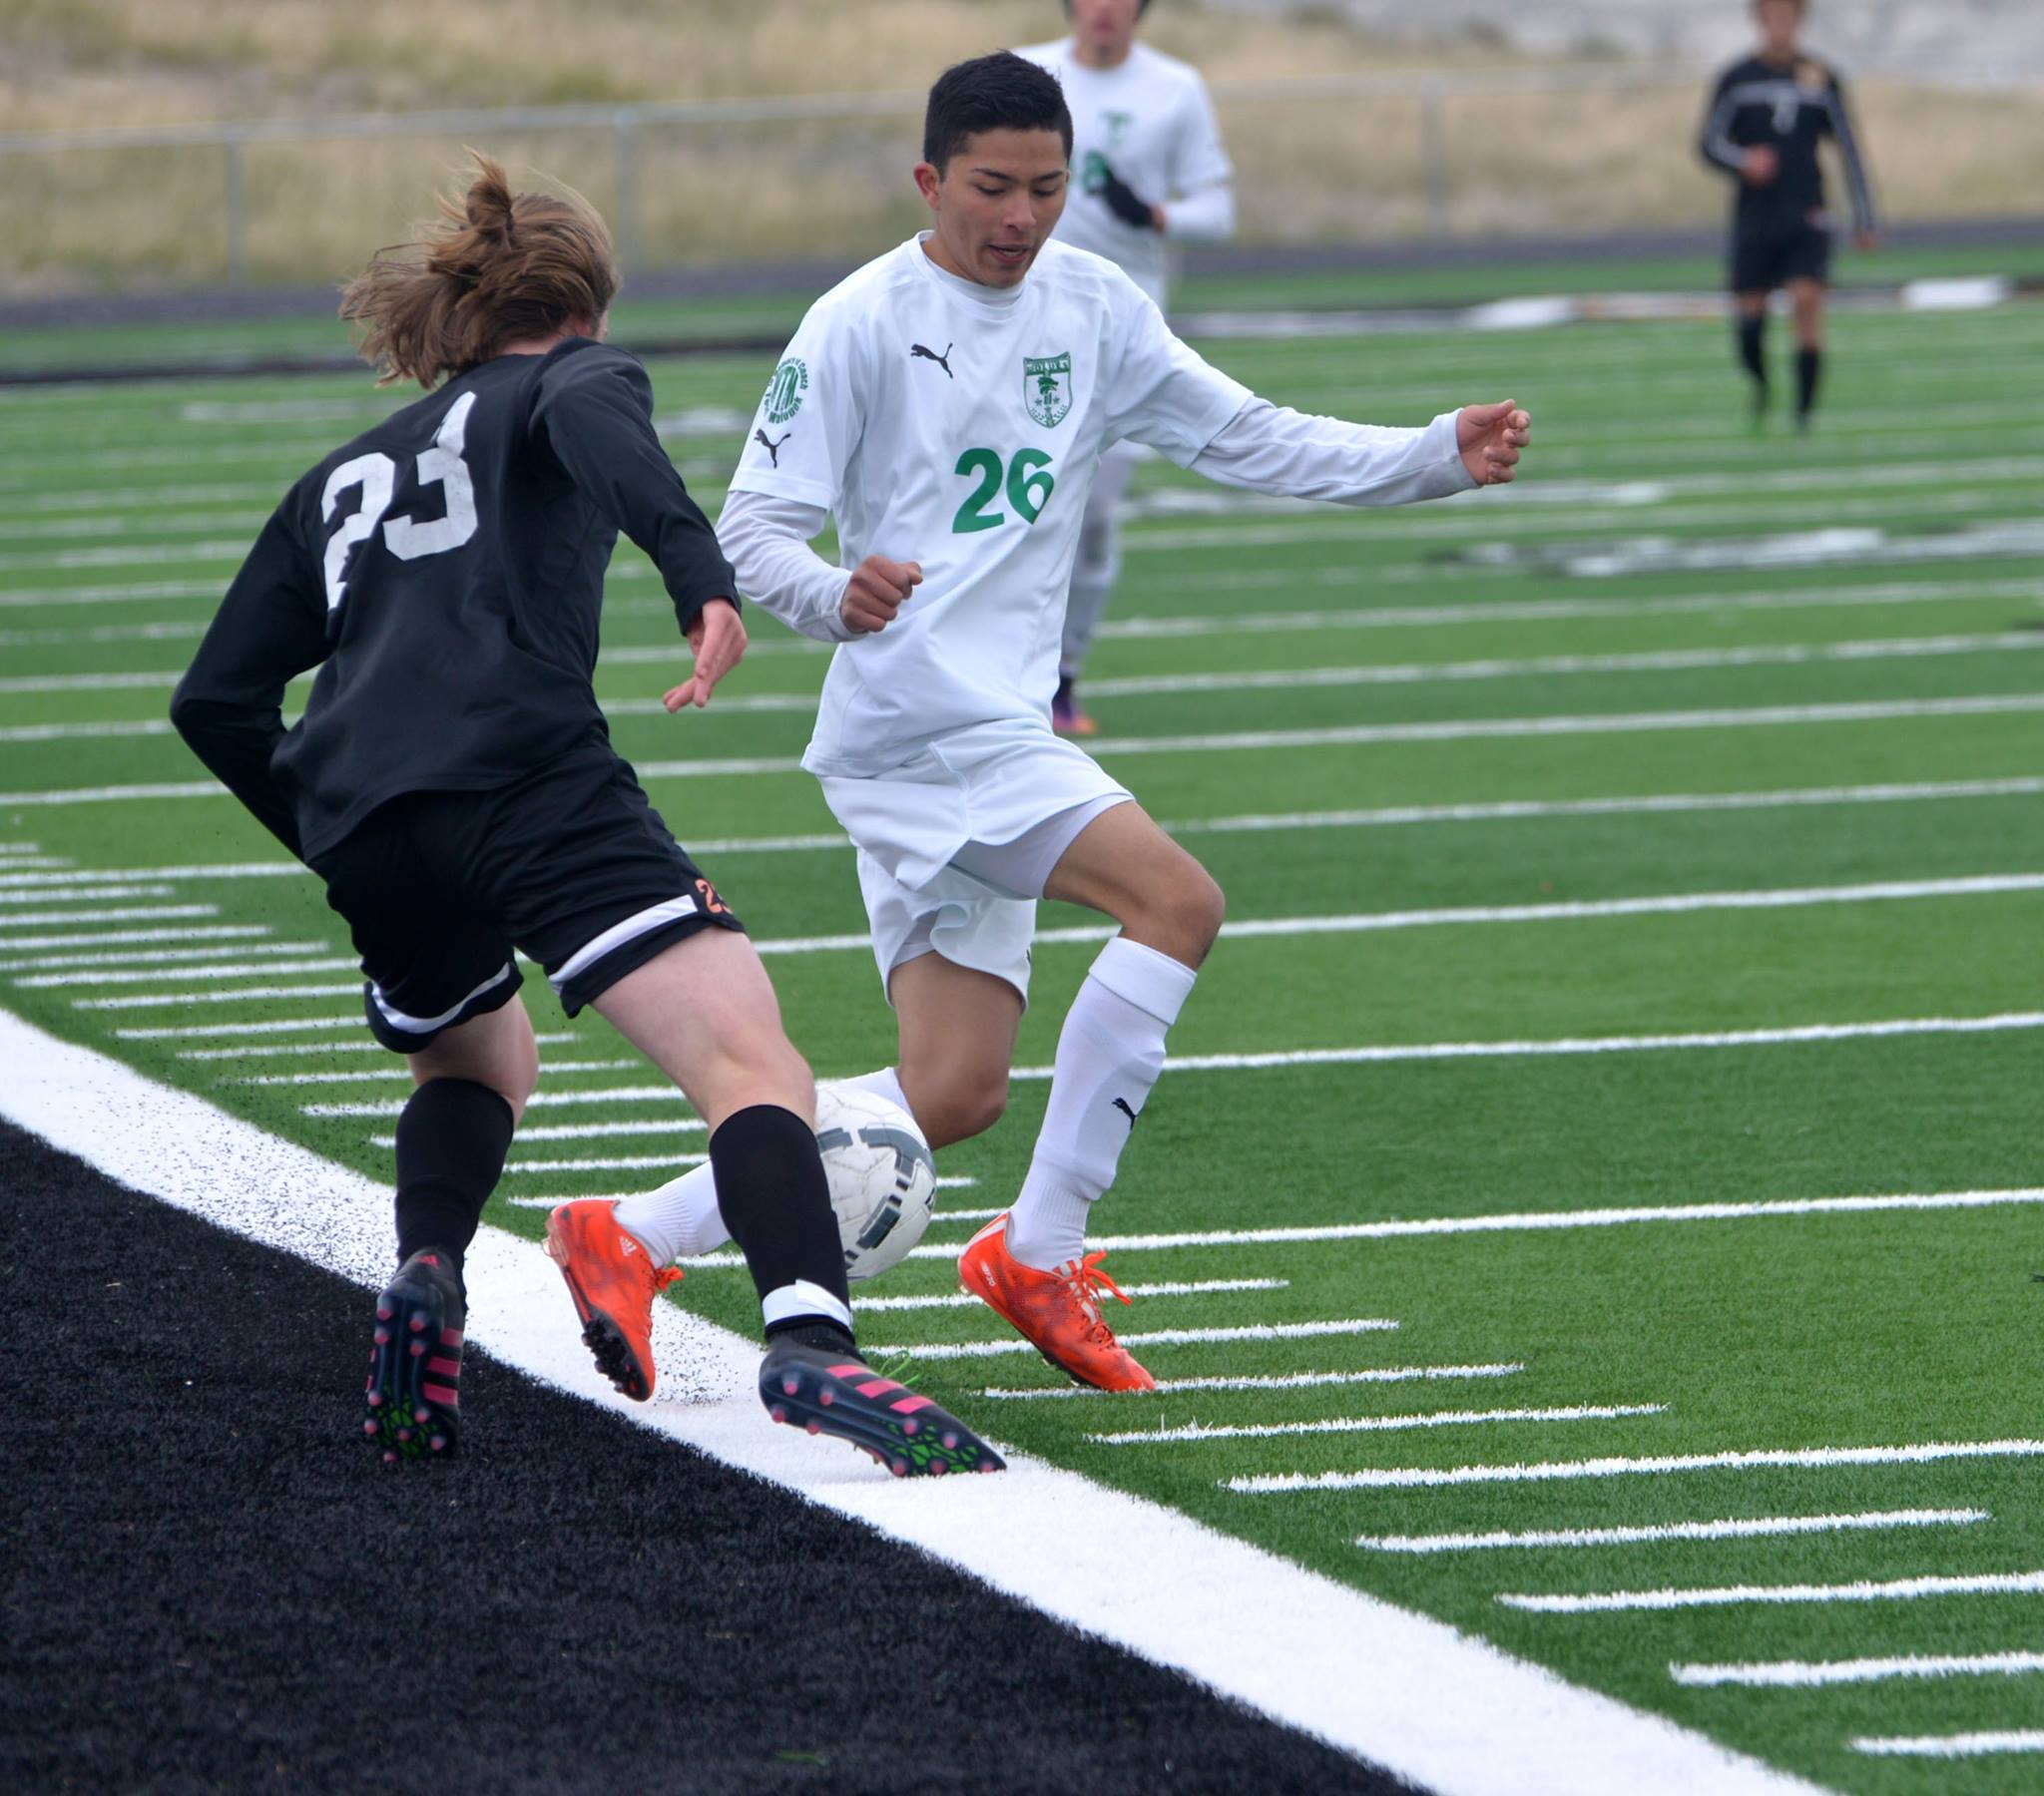 High School Boys Soccer Standings and Upcoming Schedule